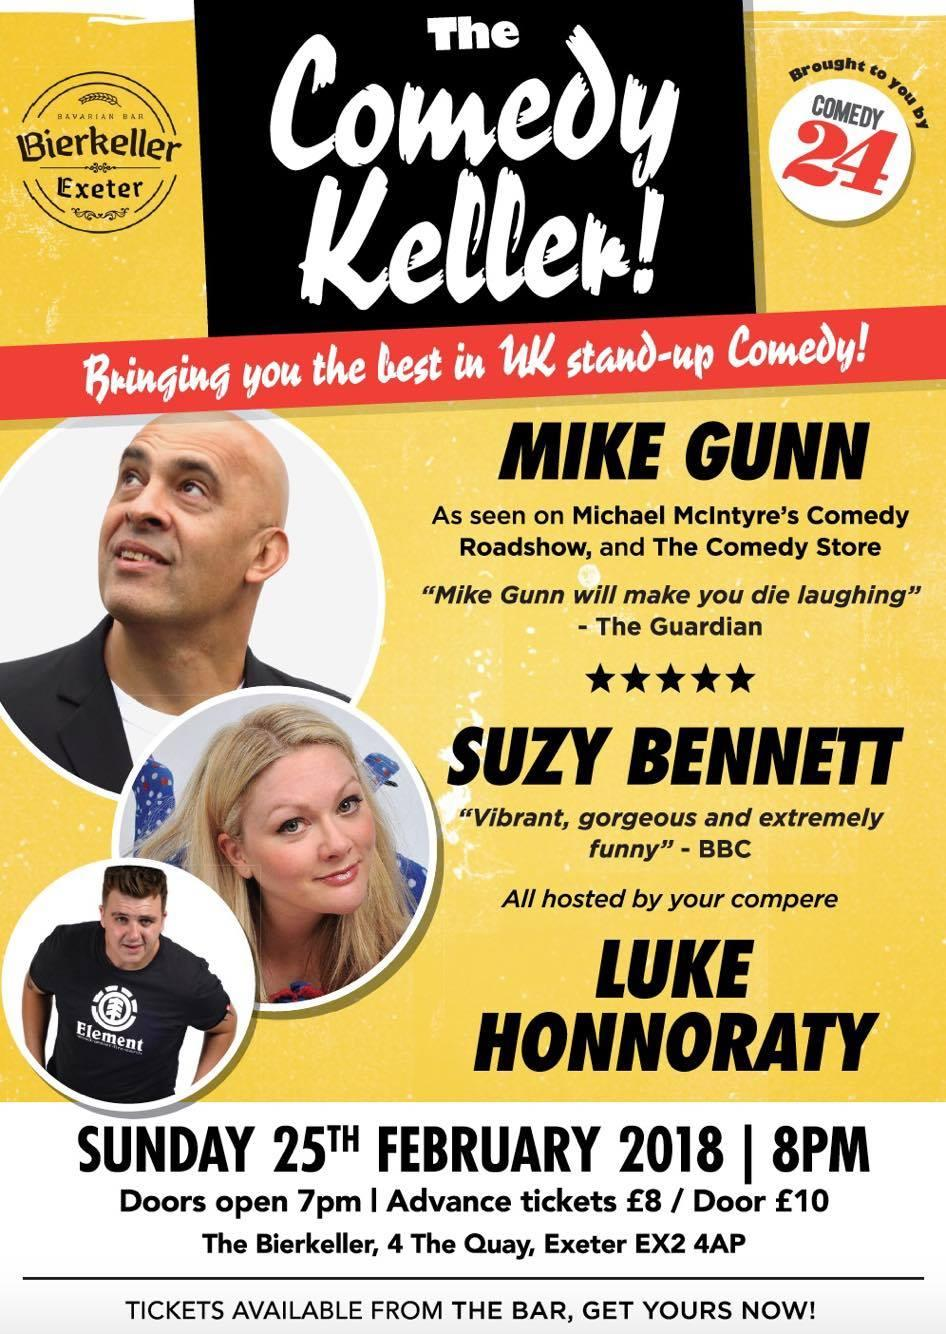 The Comedy Keller Bring You Monthly Night of